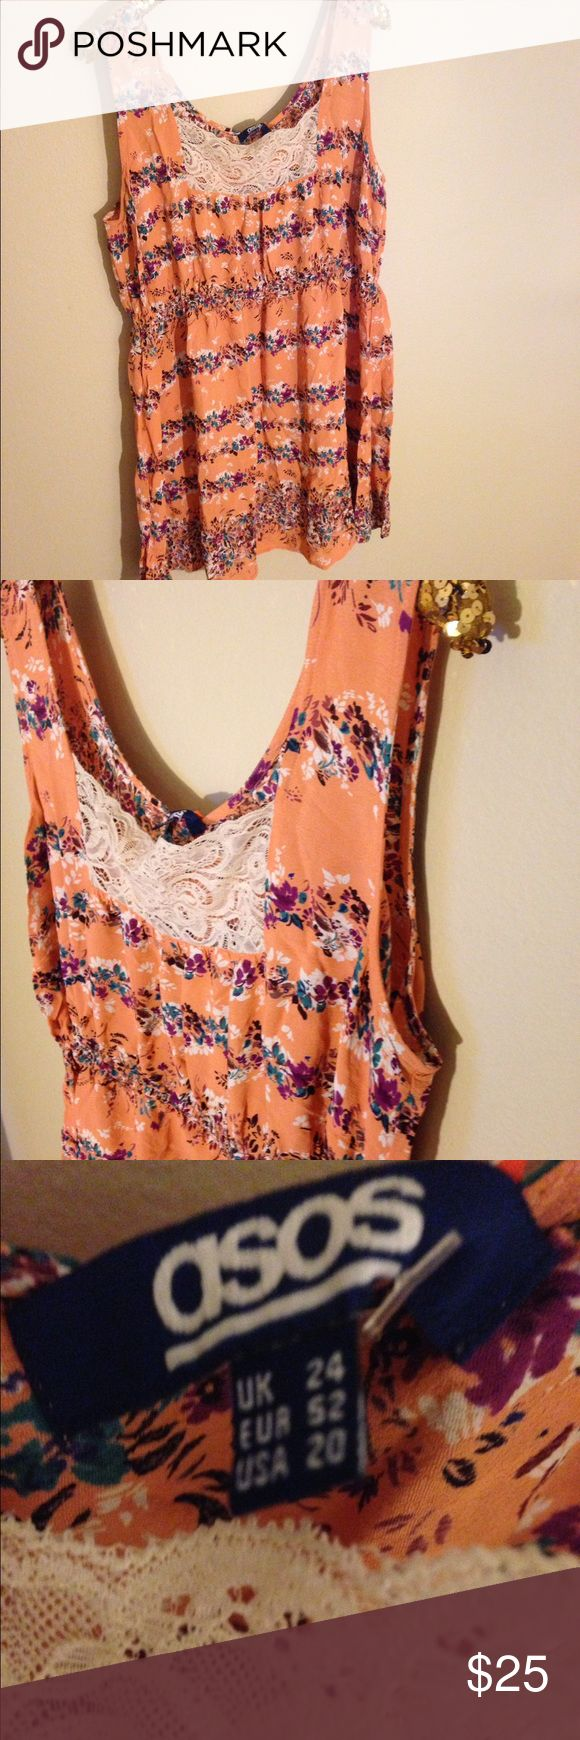 Asos plus size sleeveless top. Size 20 Bright and fun for summer with lace detail ASOS Tops Blouses